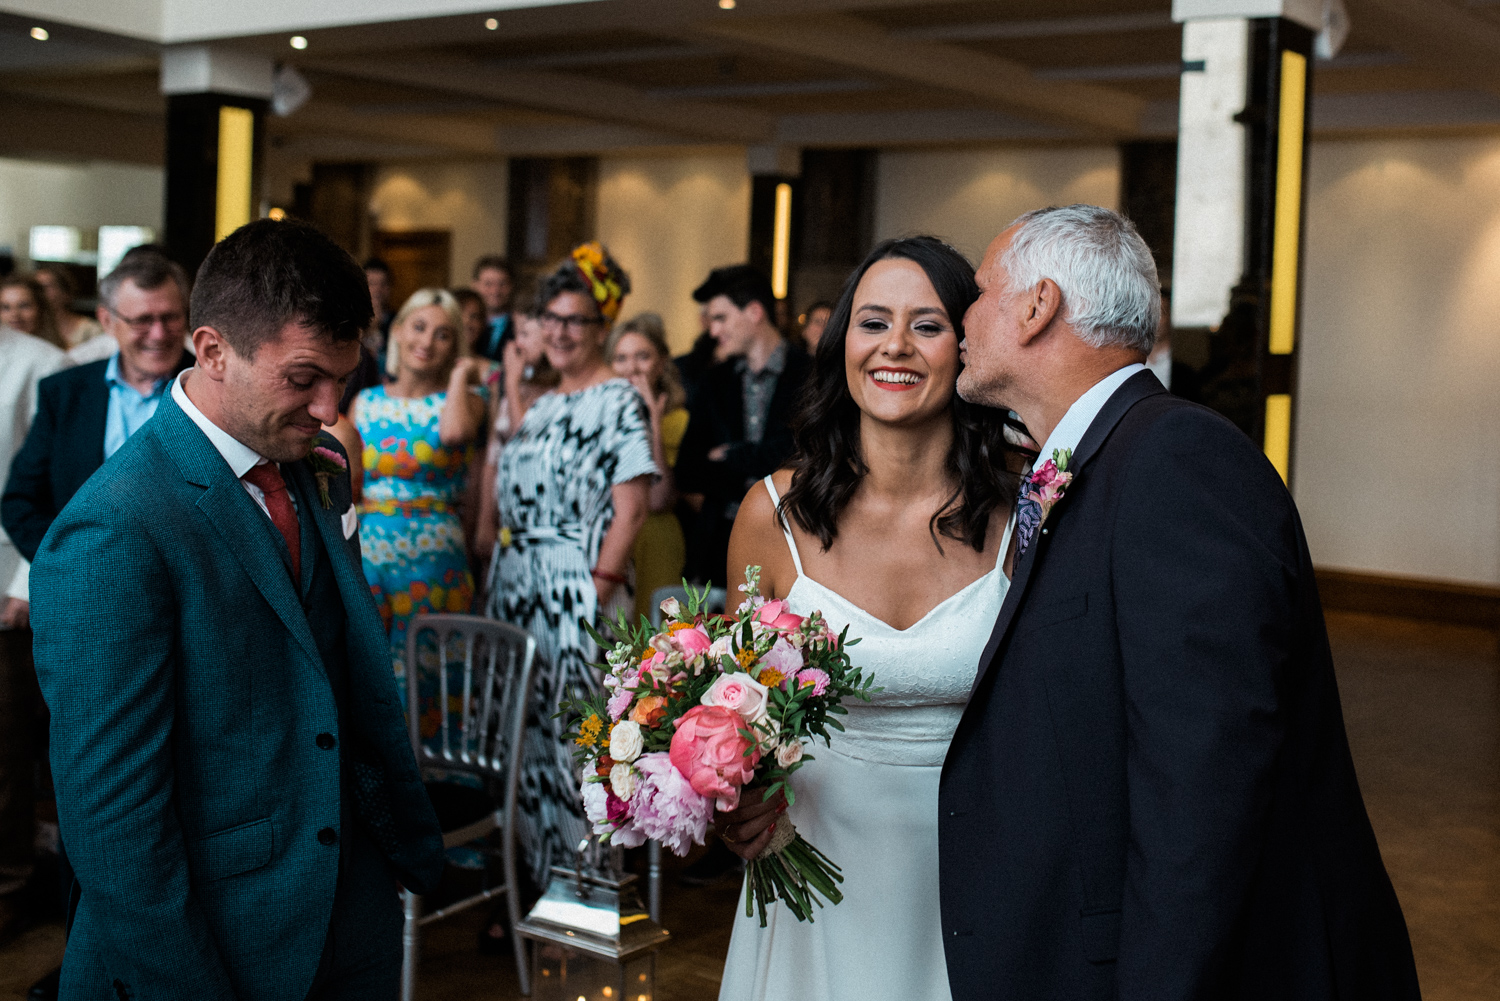 aspire-leeds-wedding-photography-1.jpg